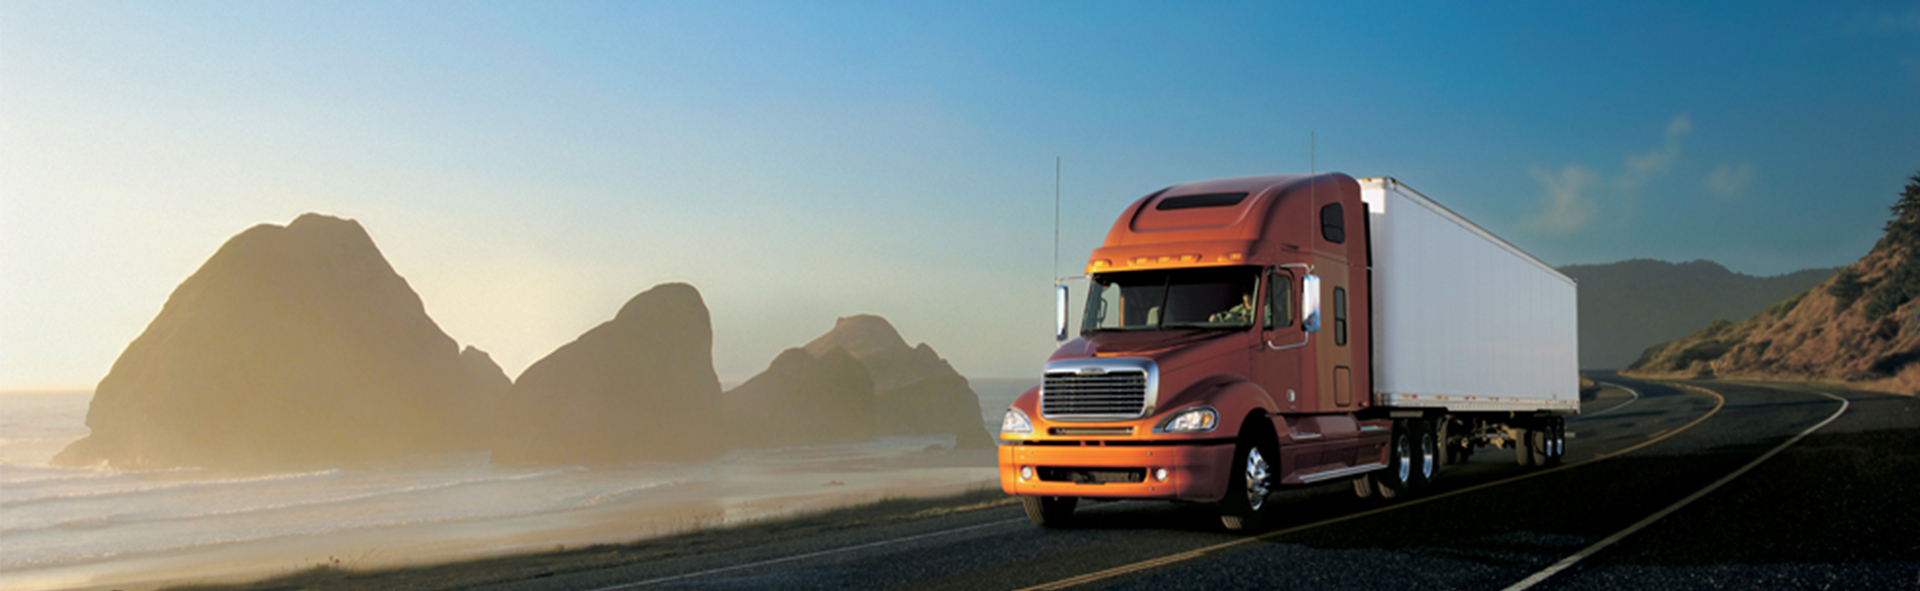 freightliner-custom-chassis-on-road